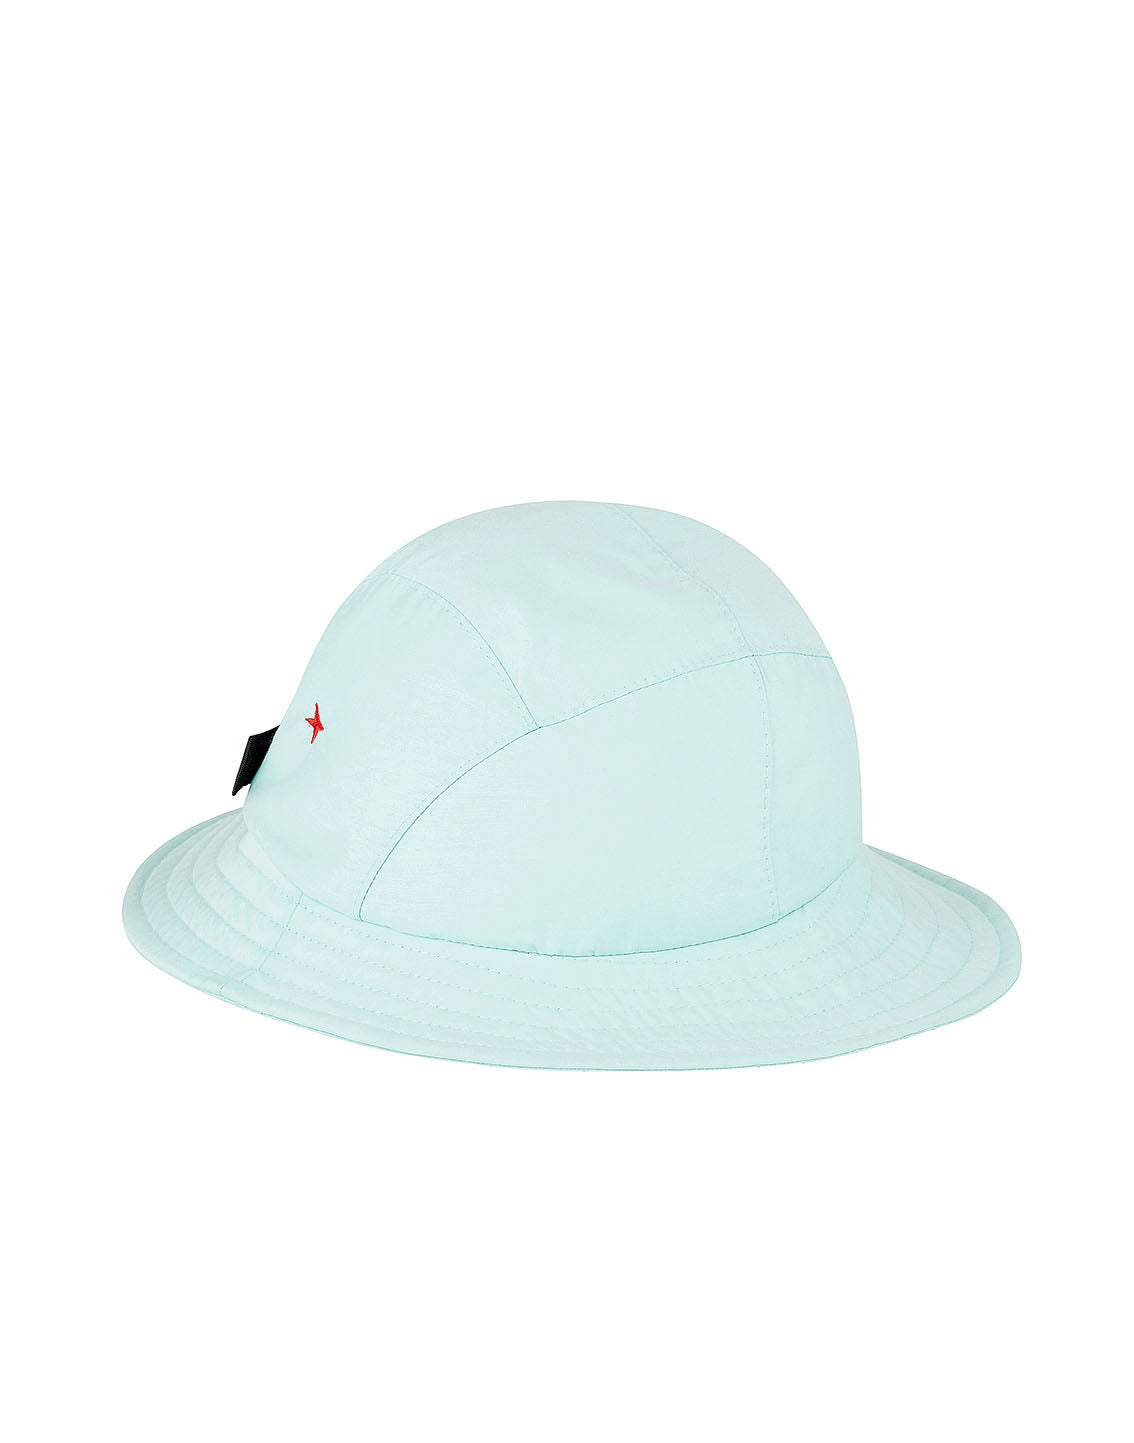 999X6 STONE ISLAND MARINA COTTON NYLON 3L Hat in Aqua